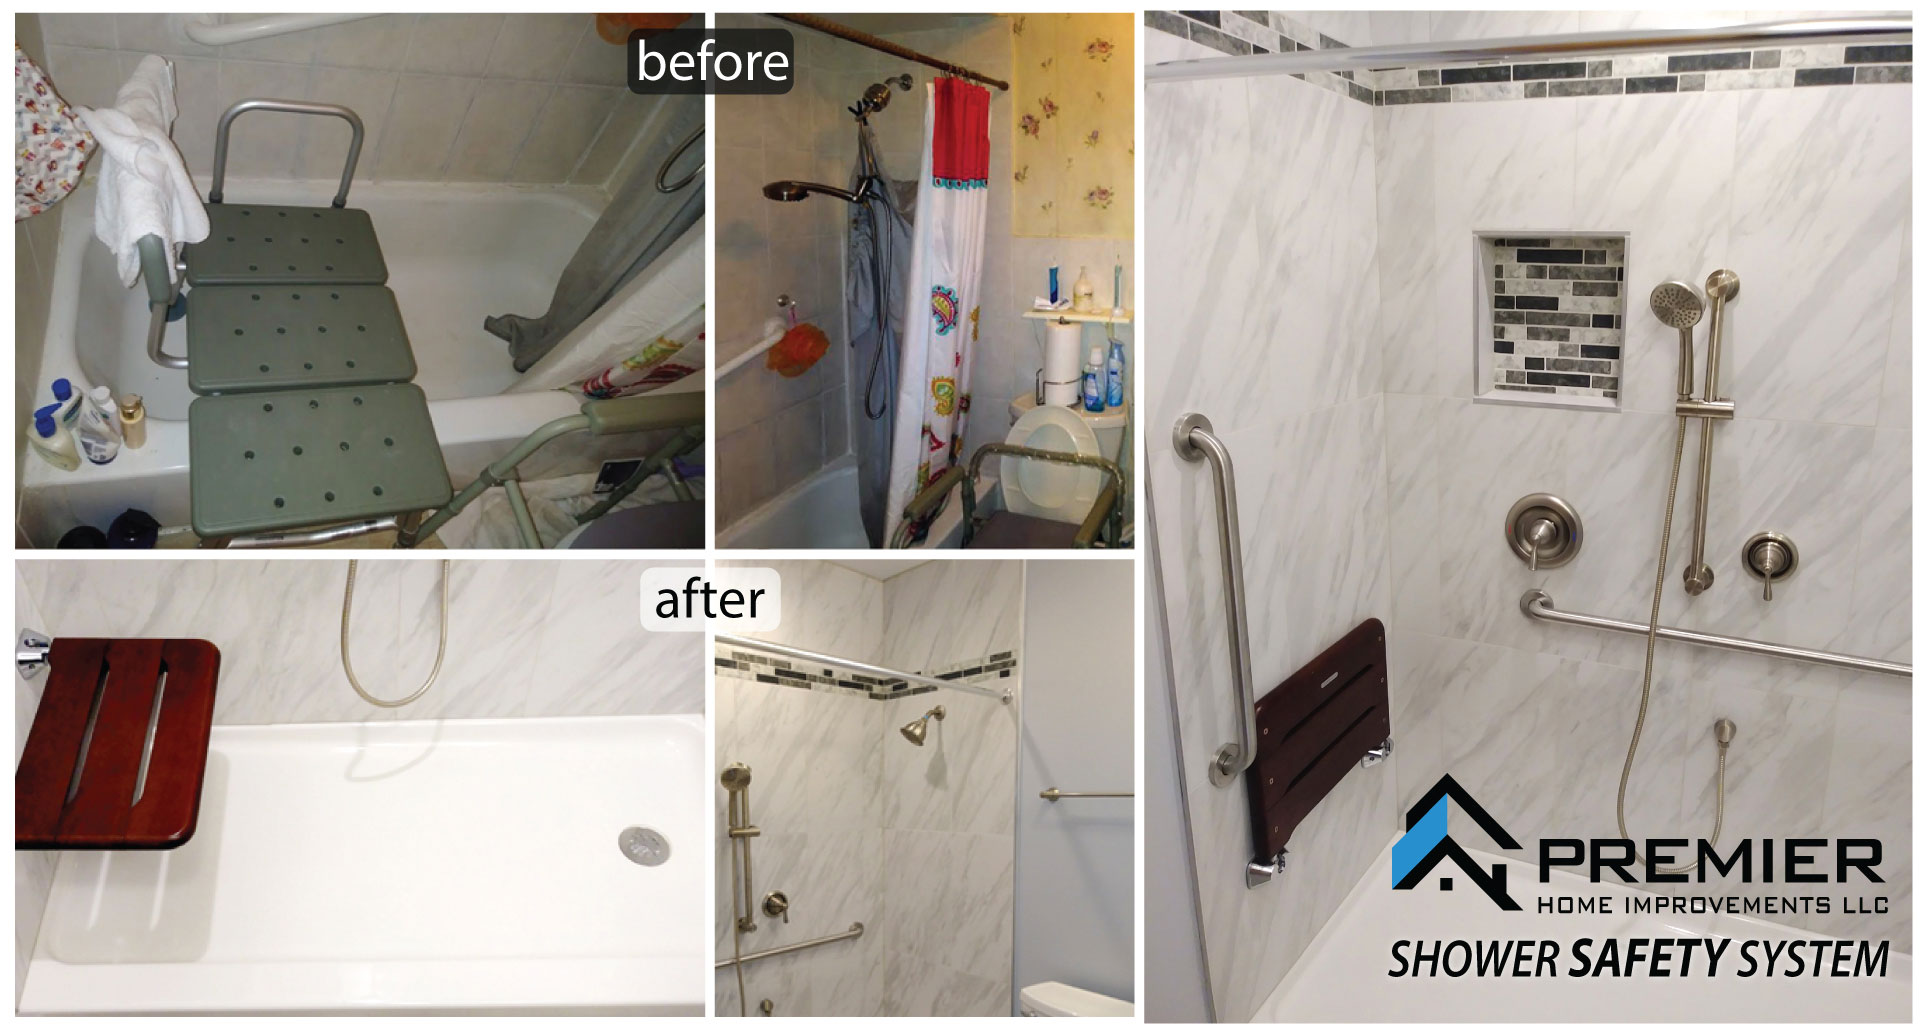 Premier Home  Improvement Improving Premier Shower Safety System Your Home One Project at a Time Premier Shower Safety System Interior & Exterior Services including Handyman Services PremierHomeImprove.com Call us at 312366-0967 Certified Remodeling Company Licensed and Bonded